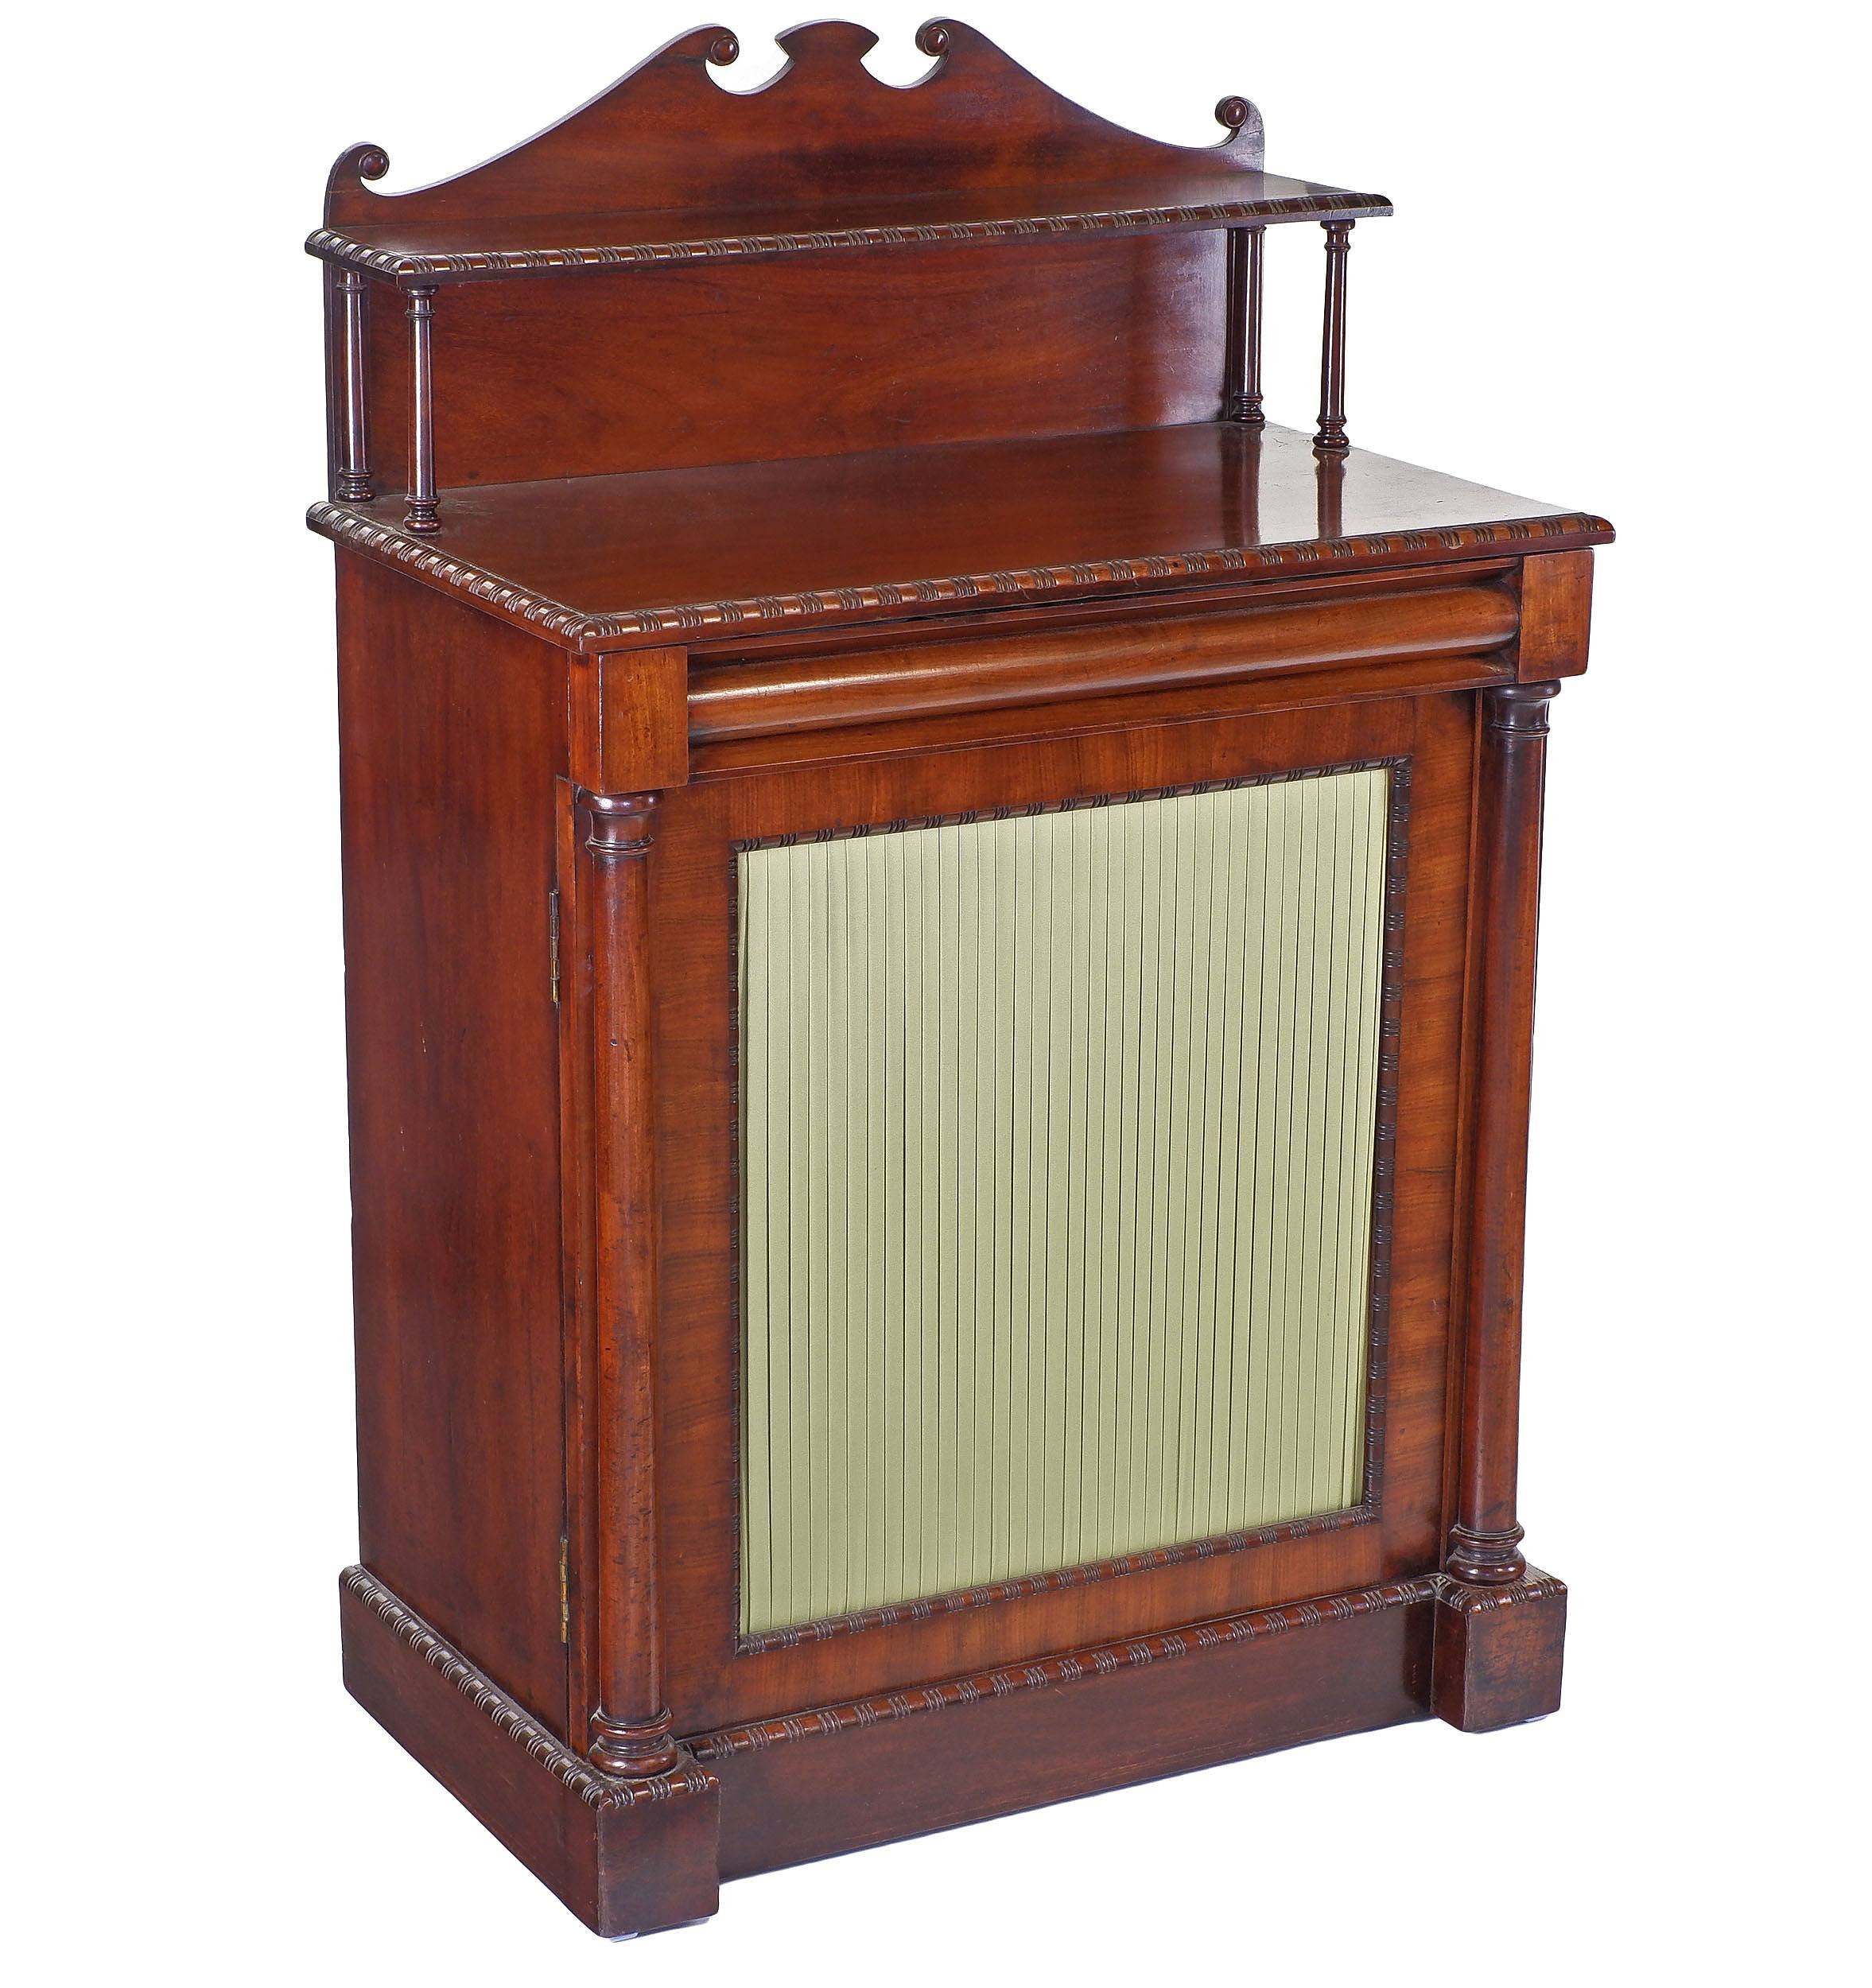 'William IV Mahogany Music Cabinet with Pleated Curtain Door Circa 1835'